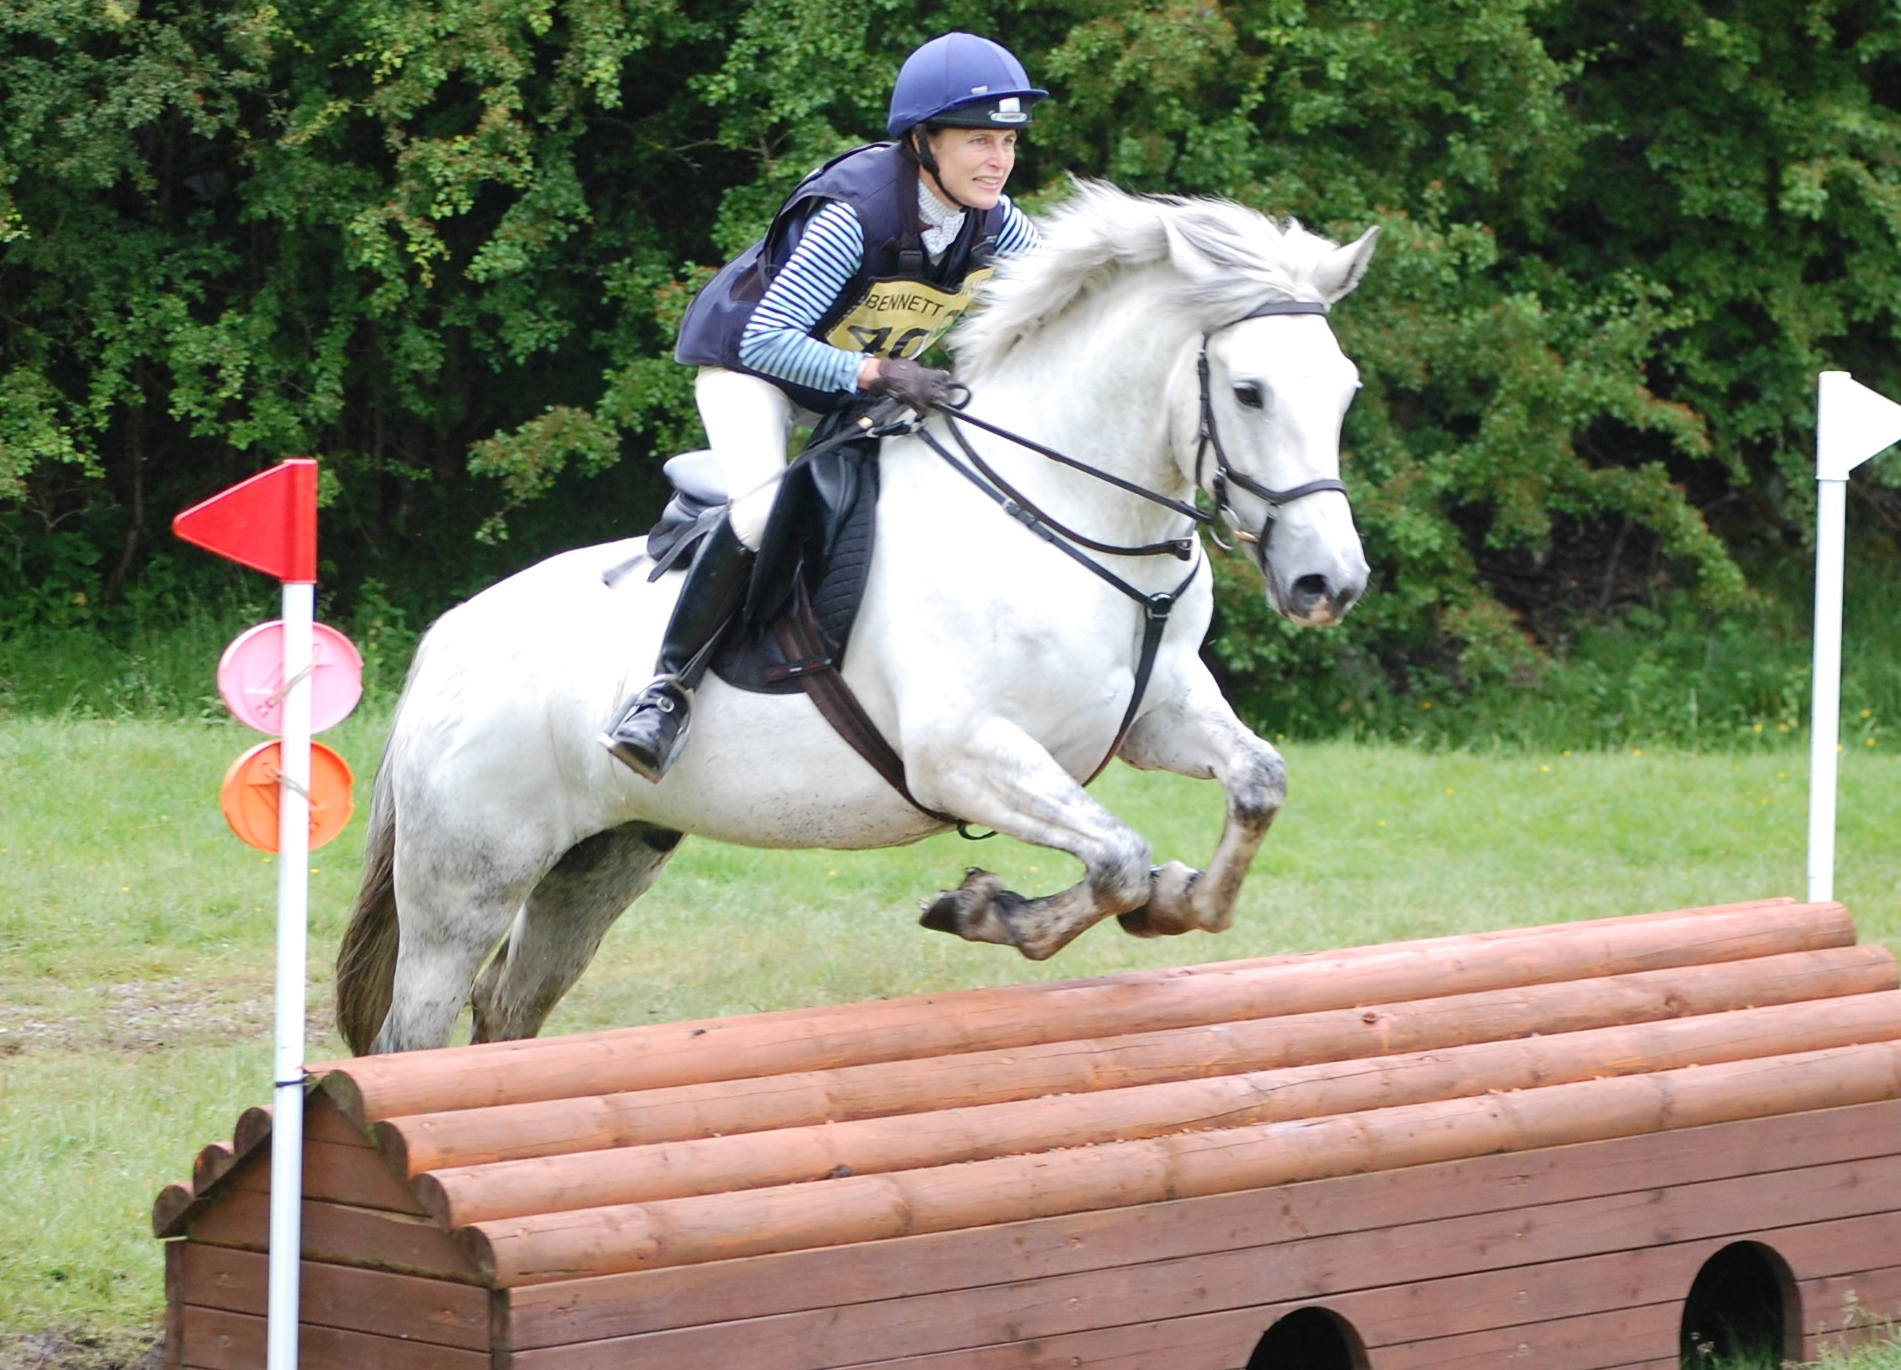 Skipton2 - GRUBS makes a Splash at Skipton Horse Trials